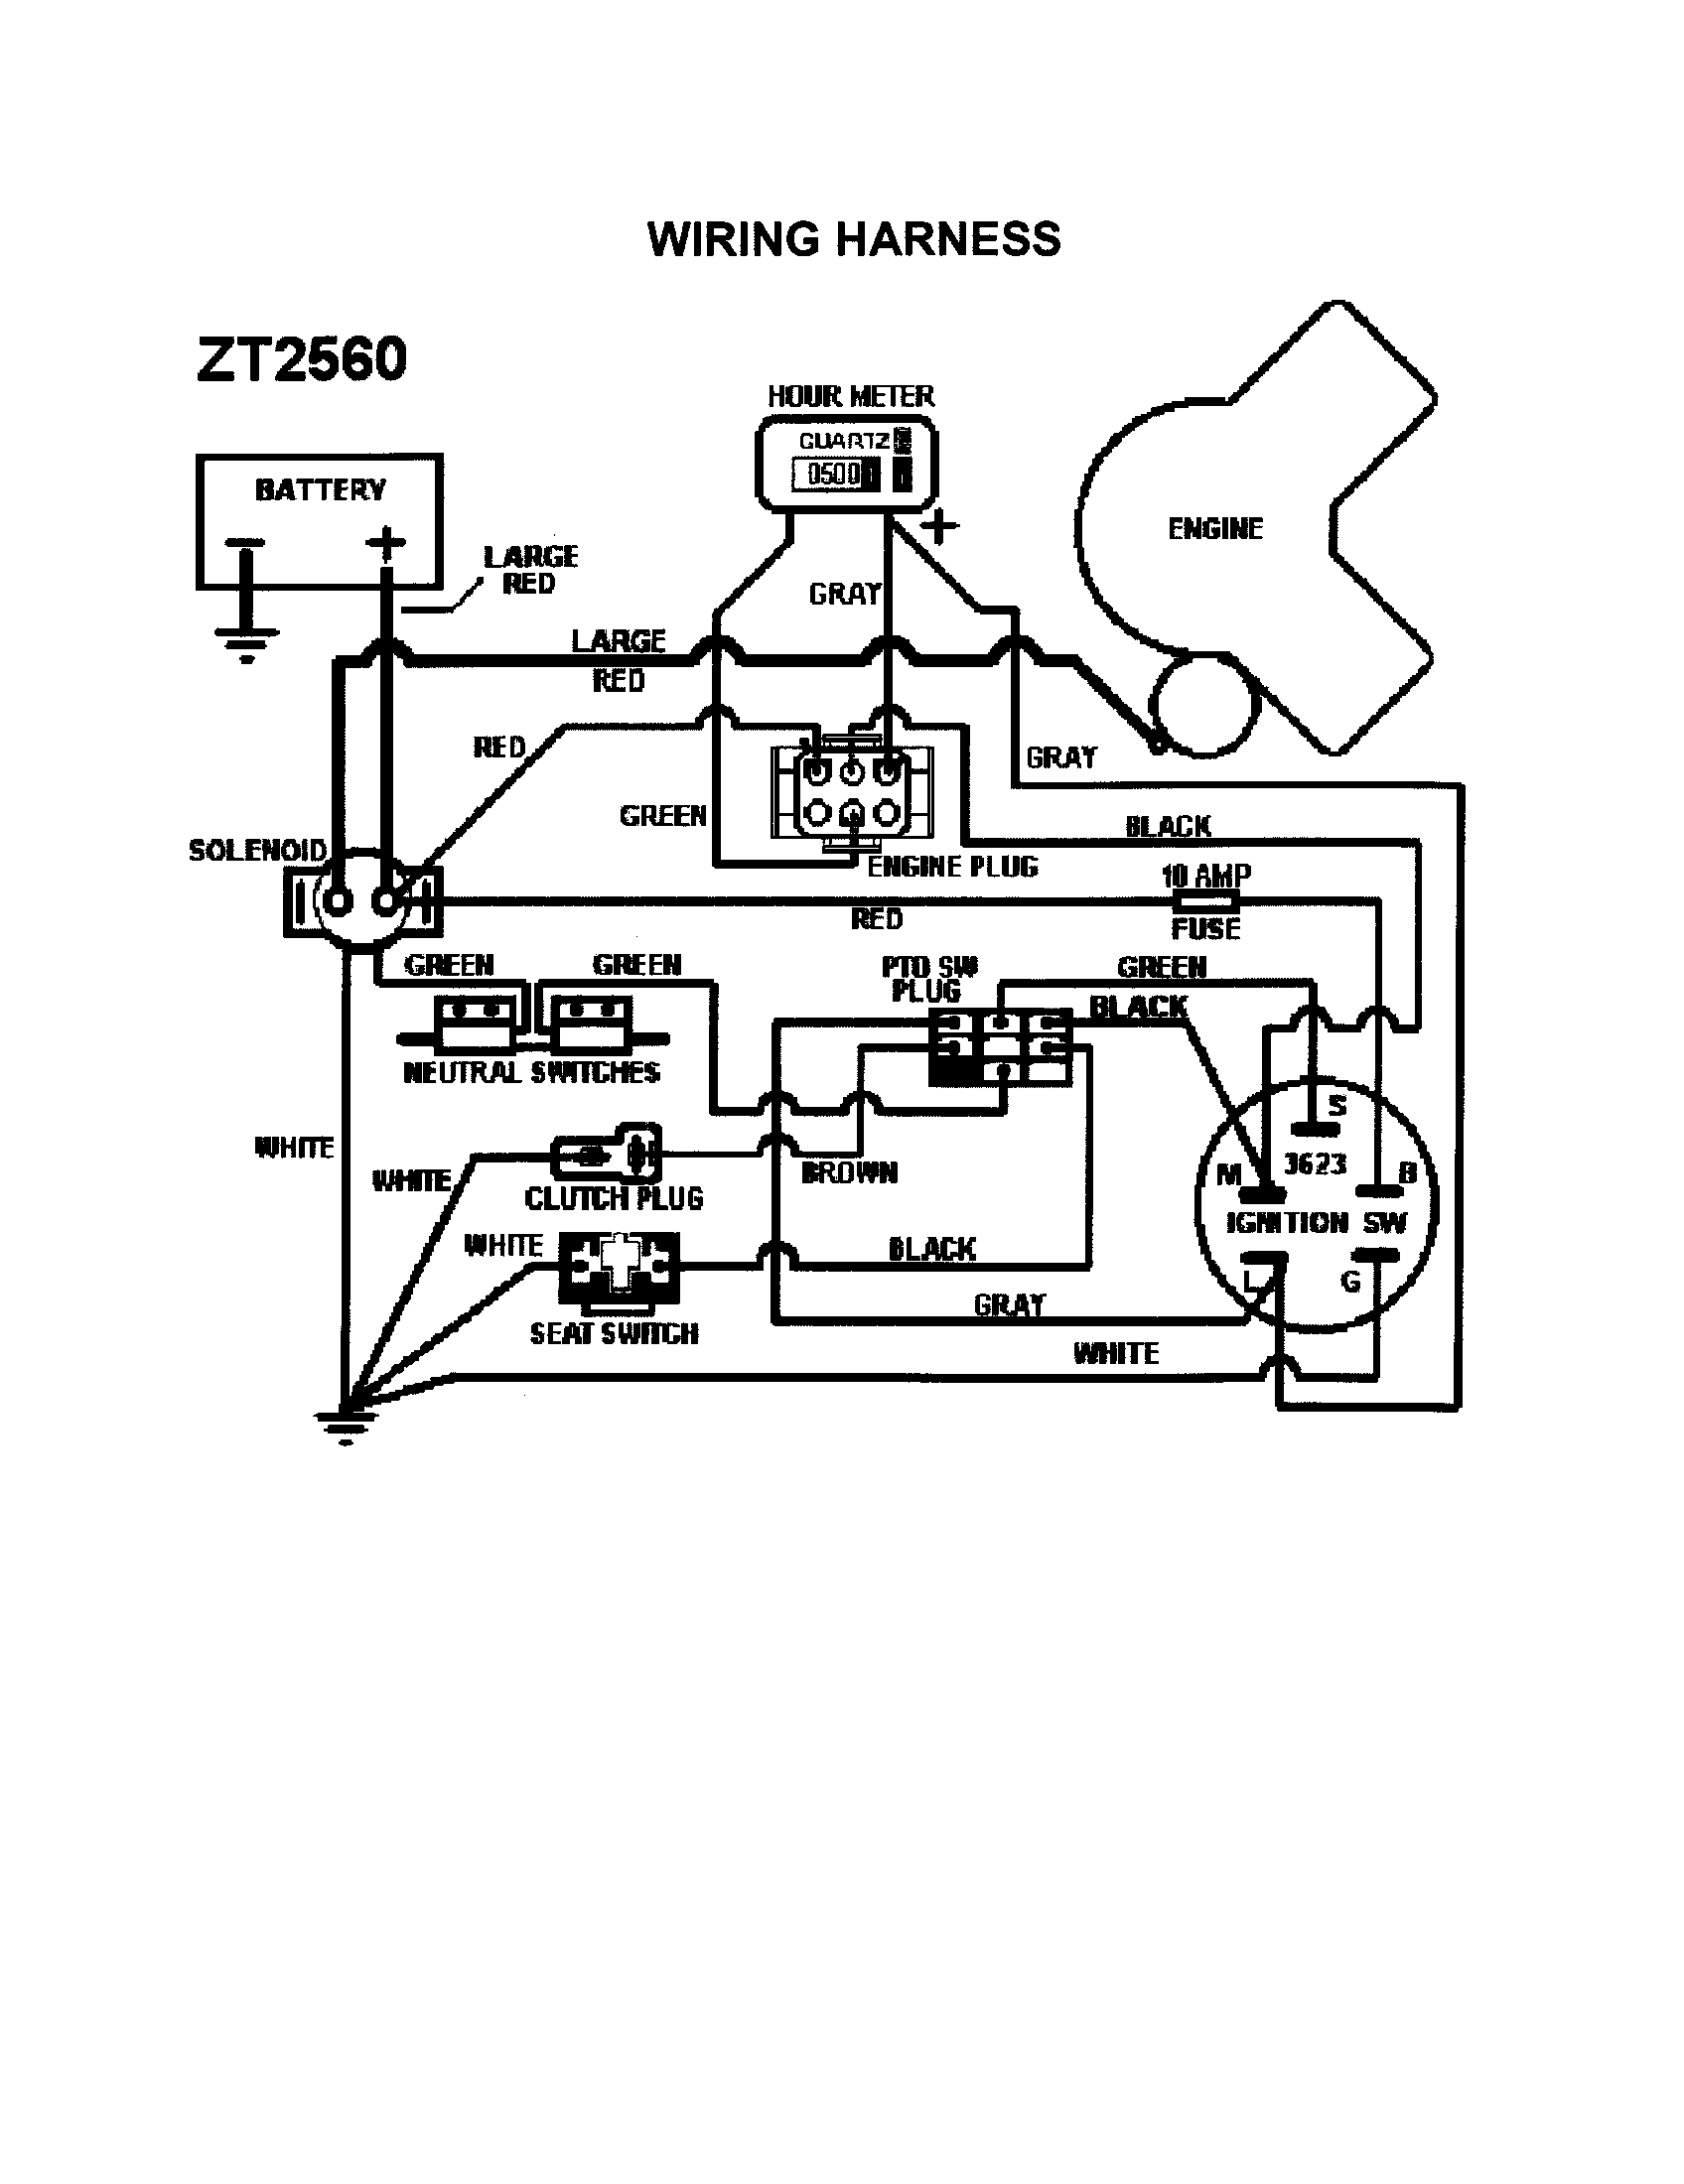 WIRING HARNESS Diagram & Parts List for Model ZT2560